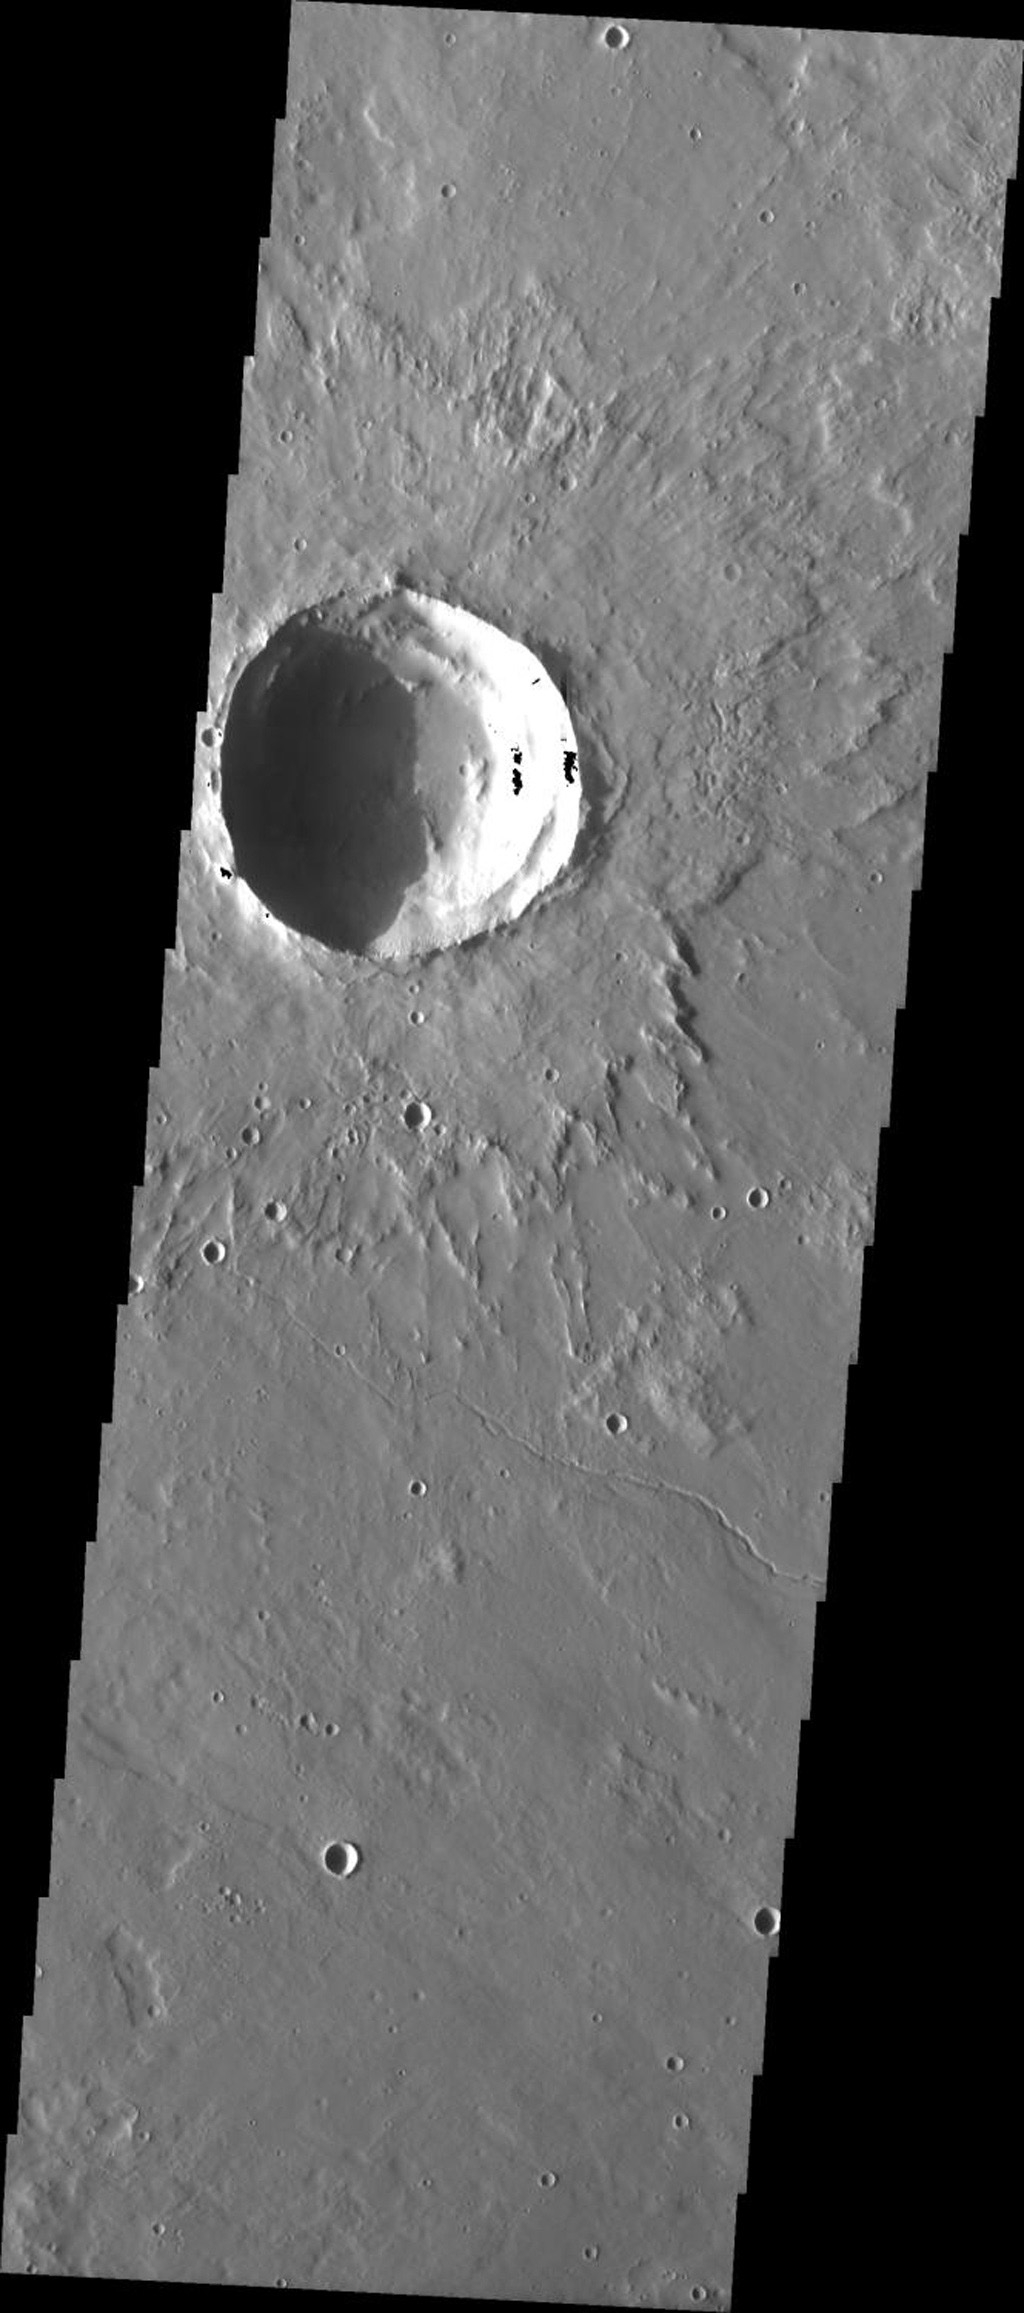 This image from NASA's 2001 Mars Odyssey released on April 27, 2004 shows lava flows on the martian surface at Elysium Mons.